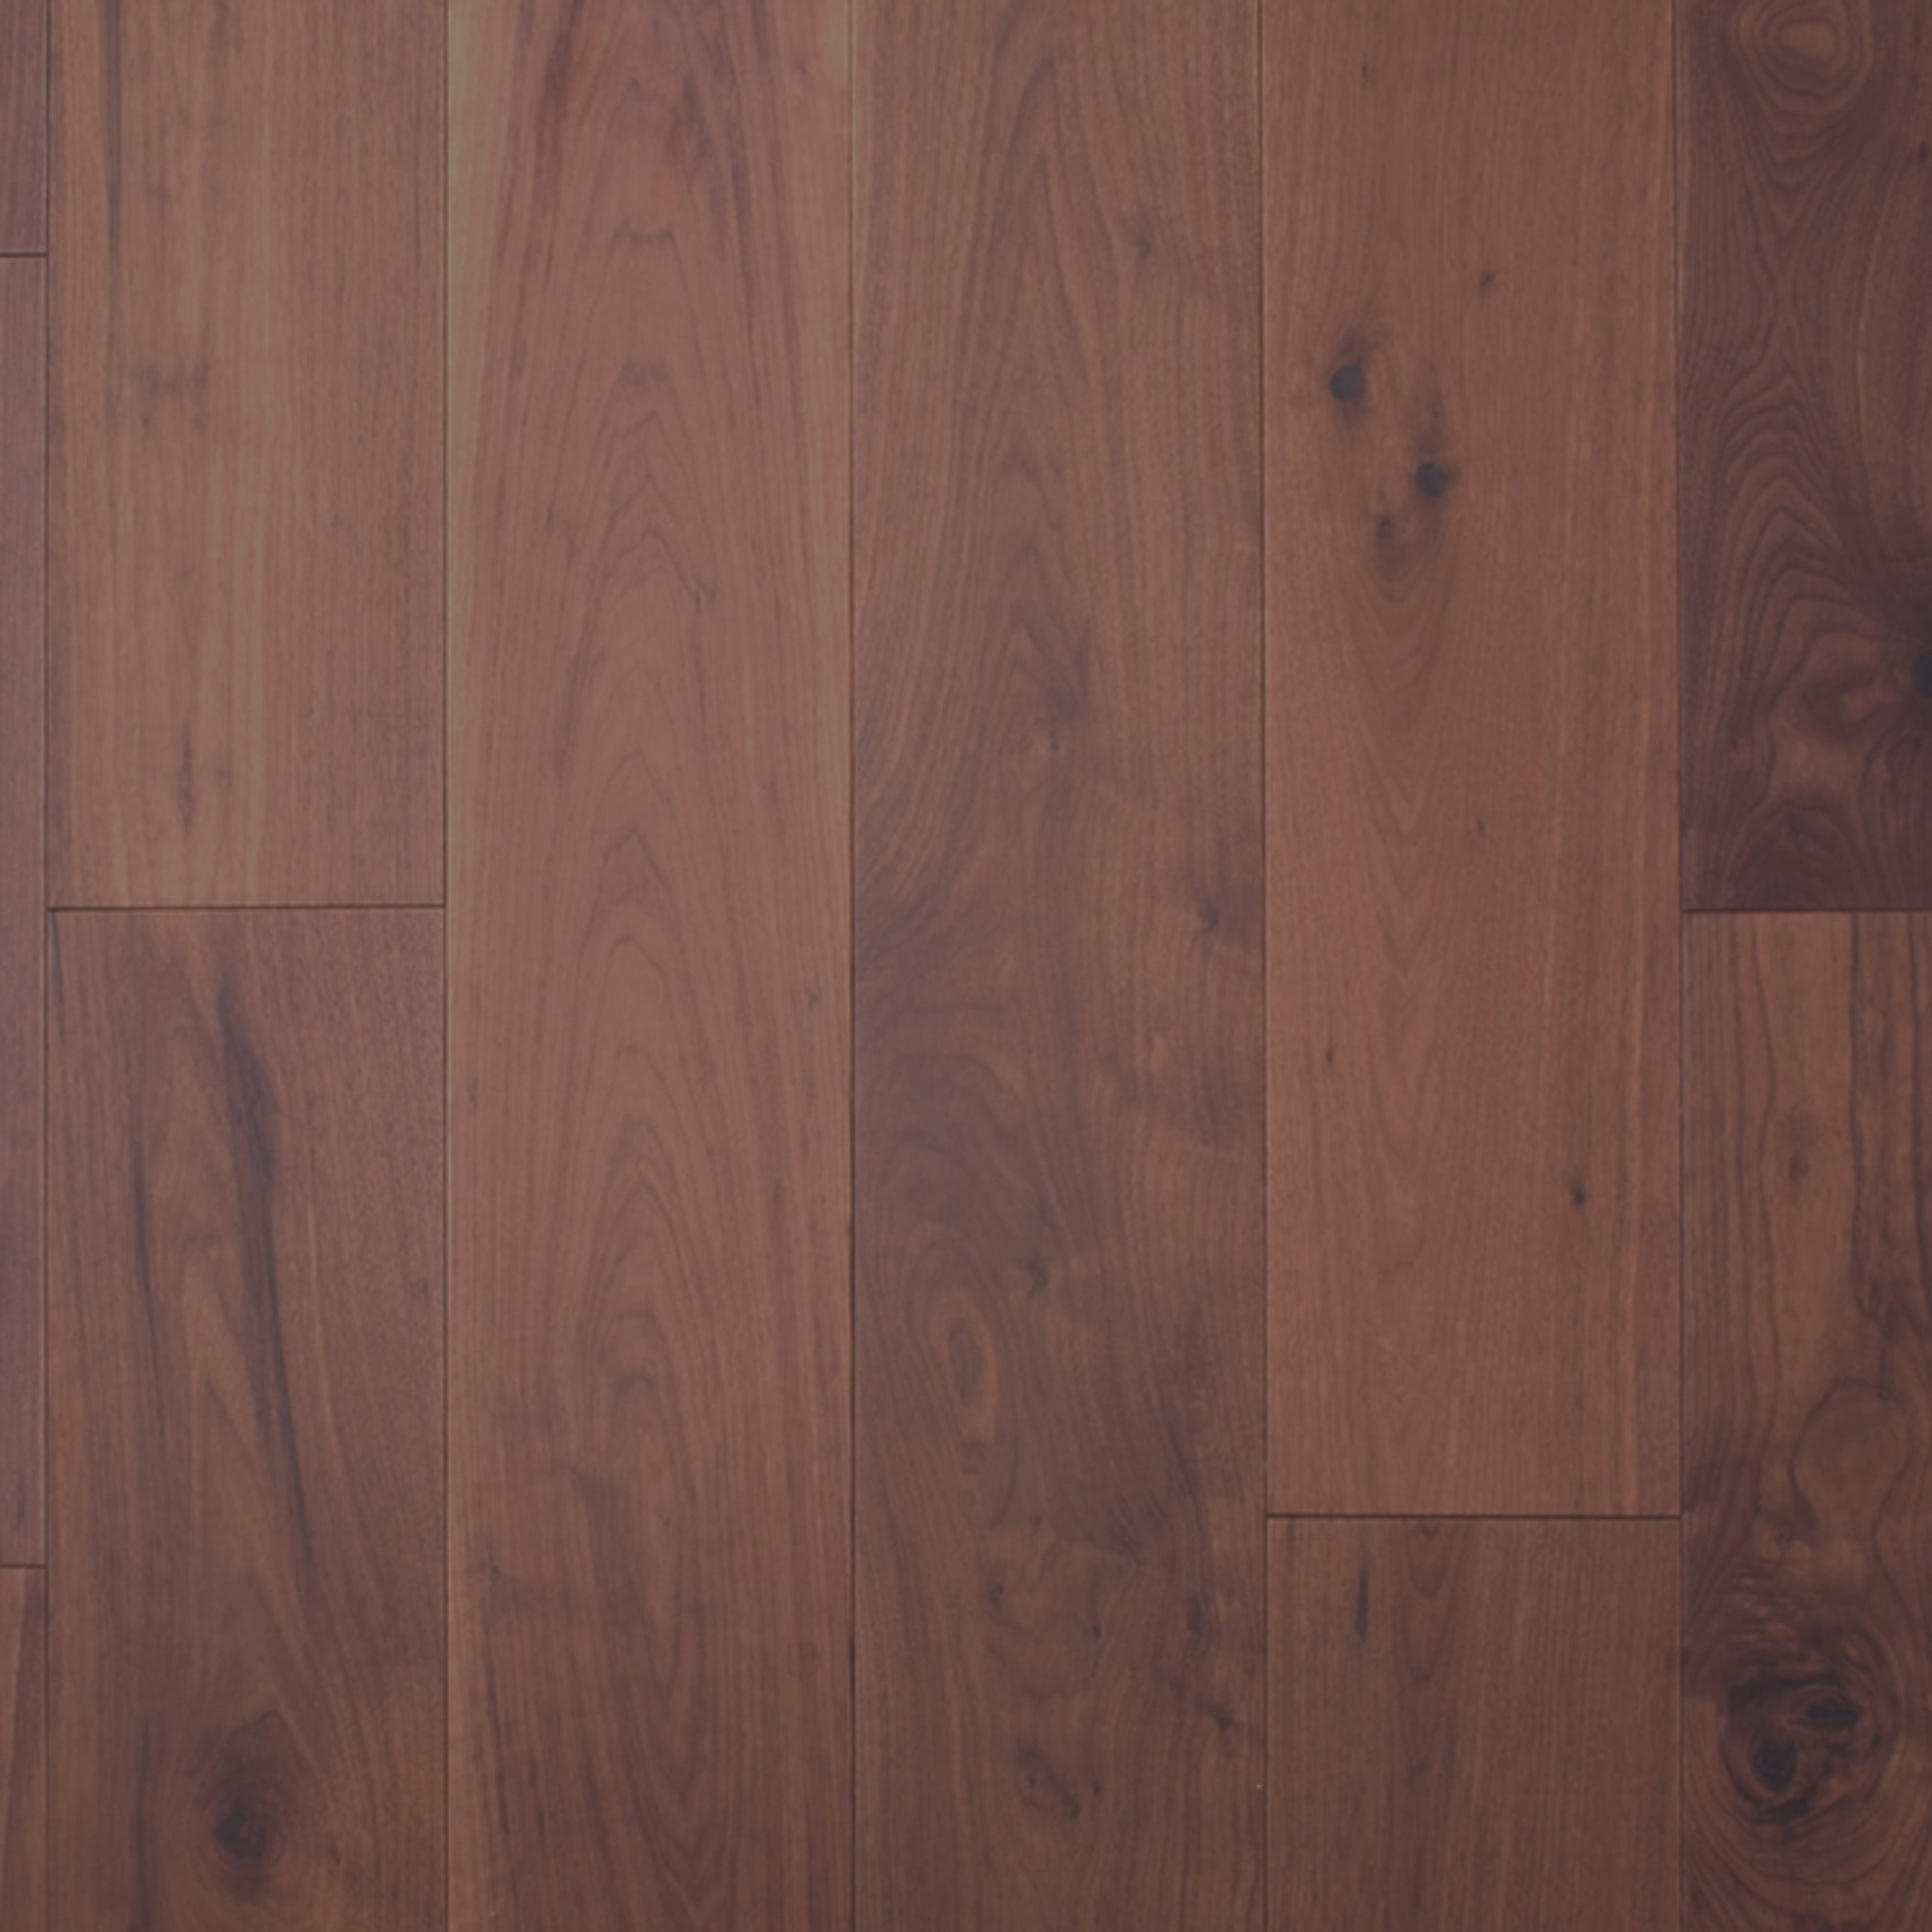 Wood flooring multi layer 18x191mm flat oiled engineered for Walnut flooring